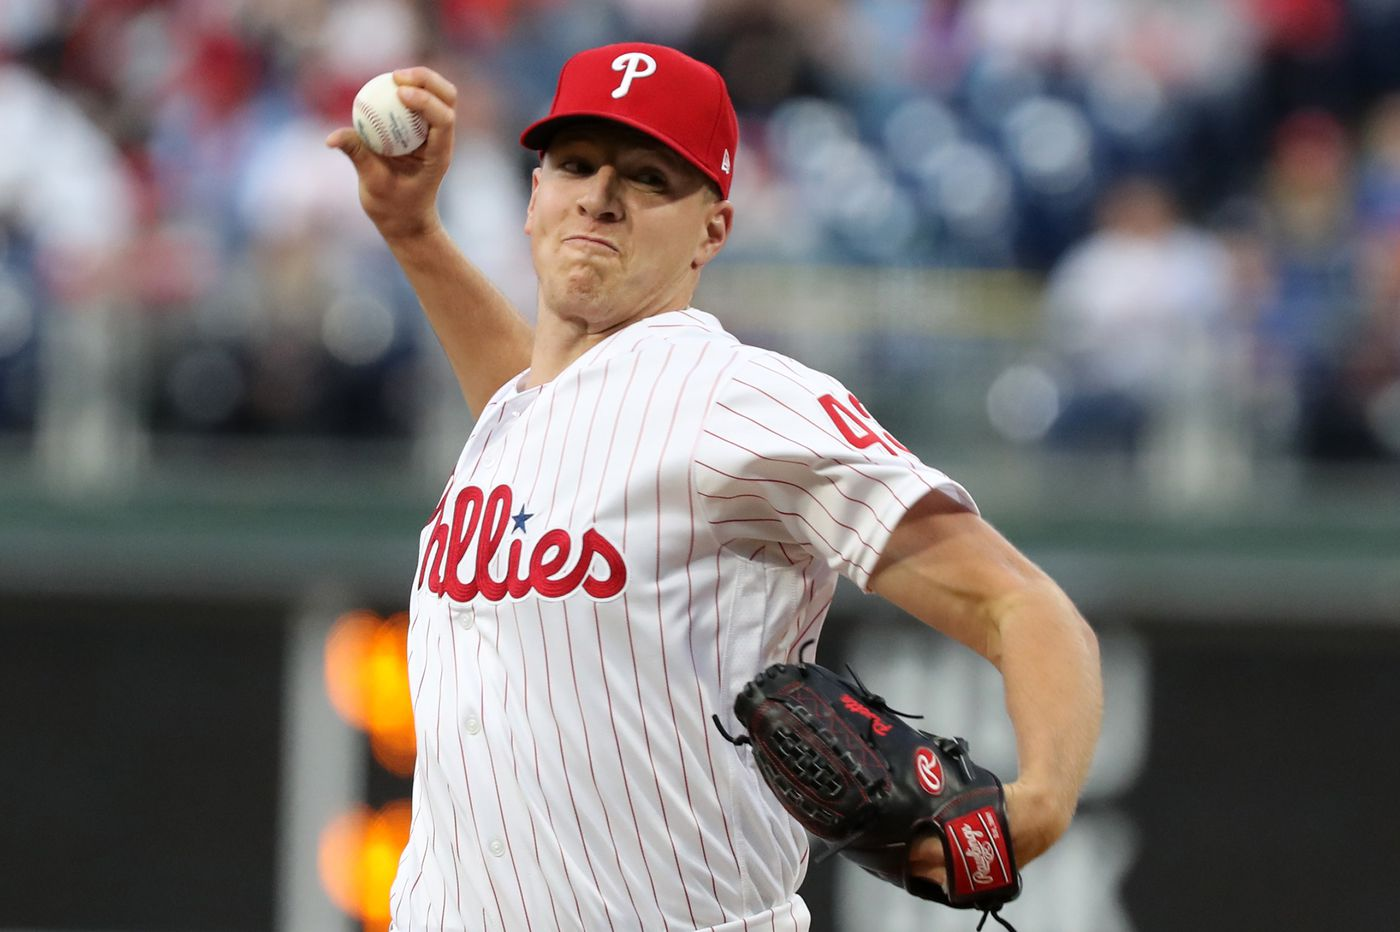 Phillies move Vince Velasquez to the bullpen, return Nick Pivetta to rotation